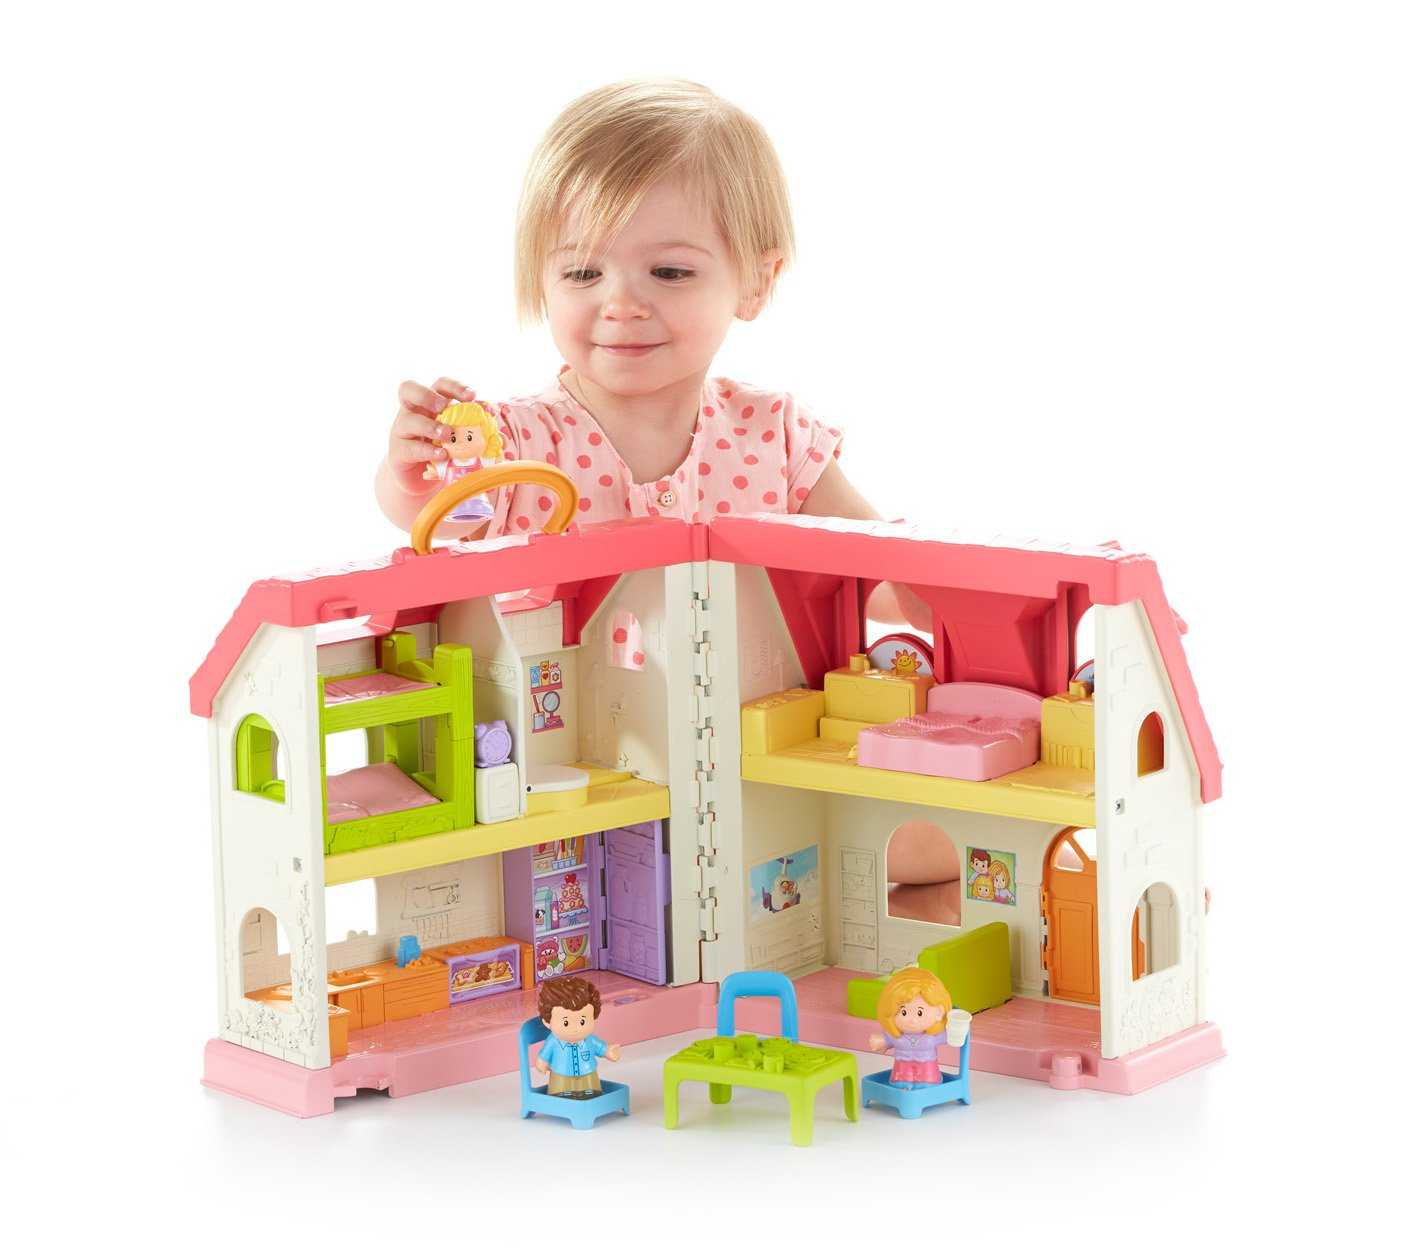 Top 9 Best Dollhouse for Toddlers Reviews in 2021 18